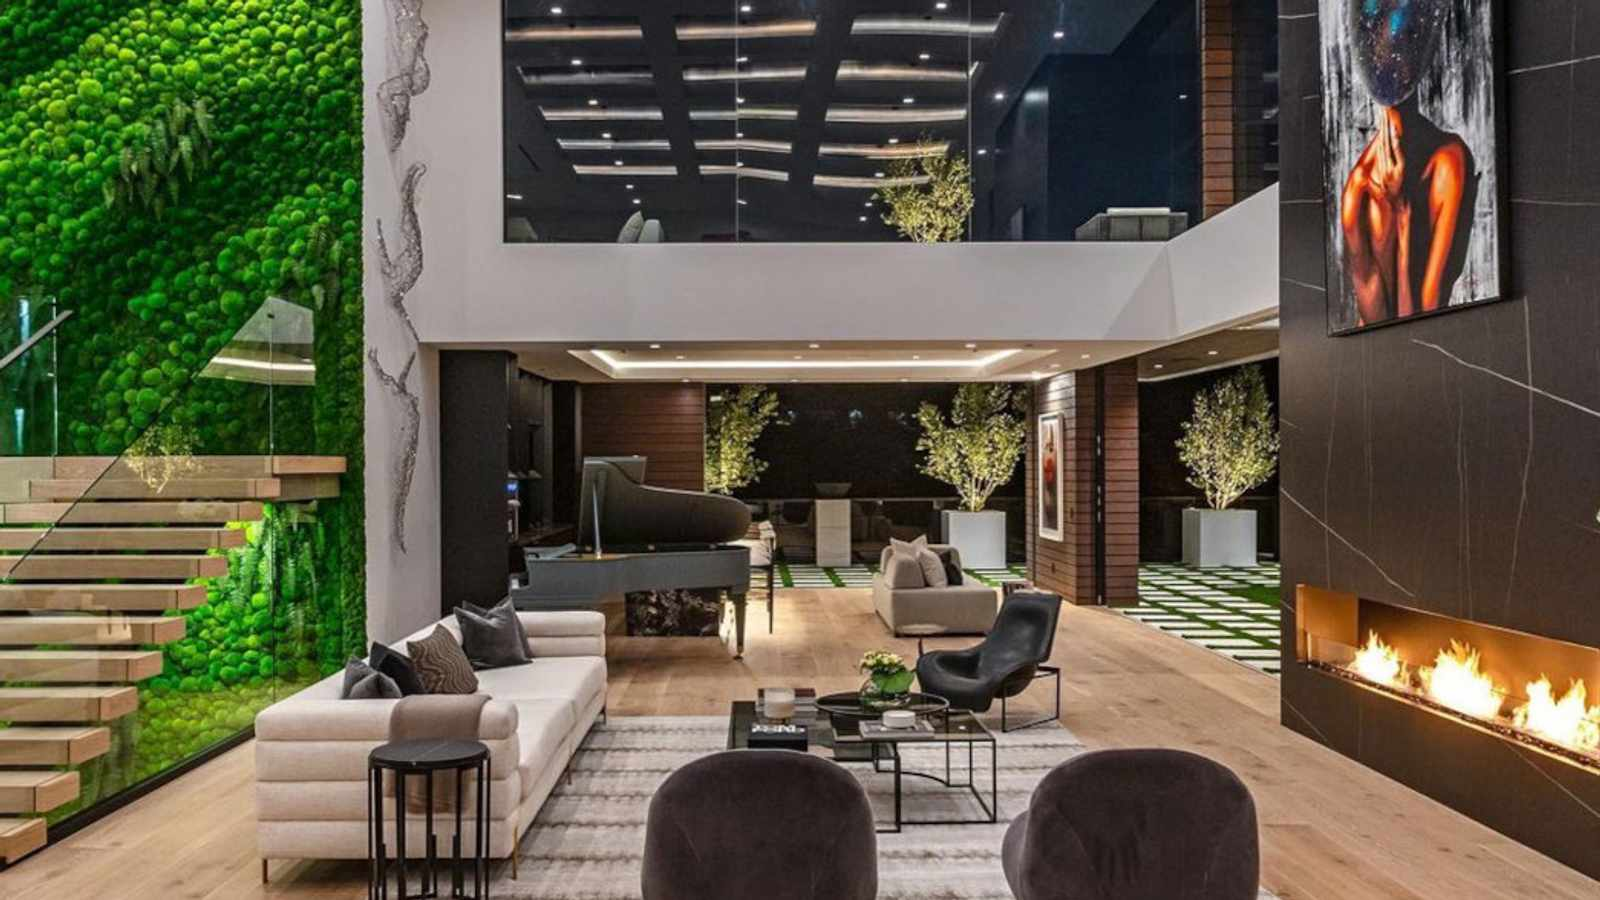 WATCH: Inside A $43M (R613M) Private Resort Mansion With A Car Showroom